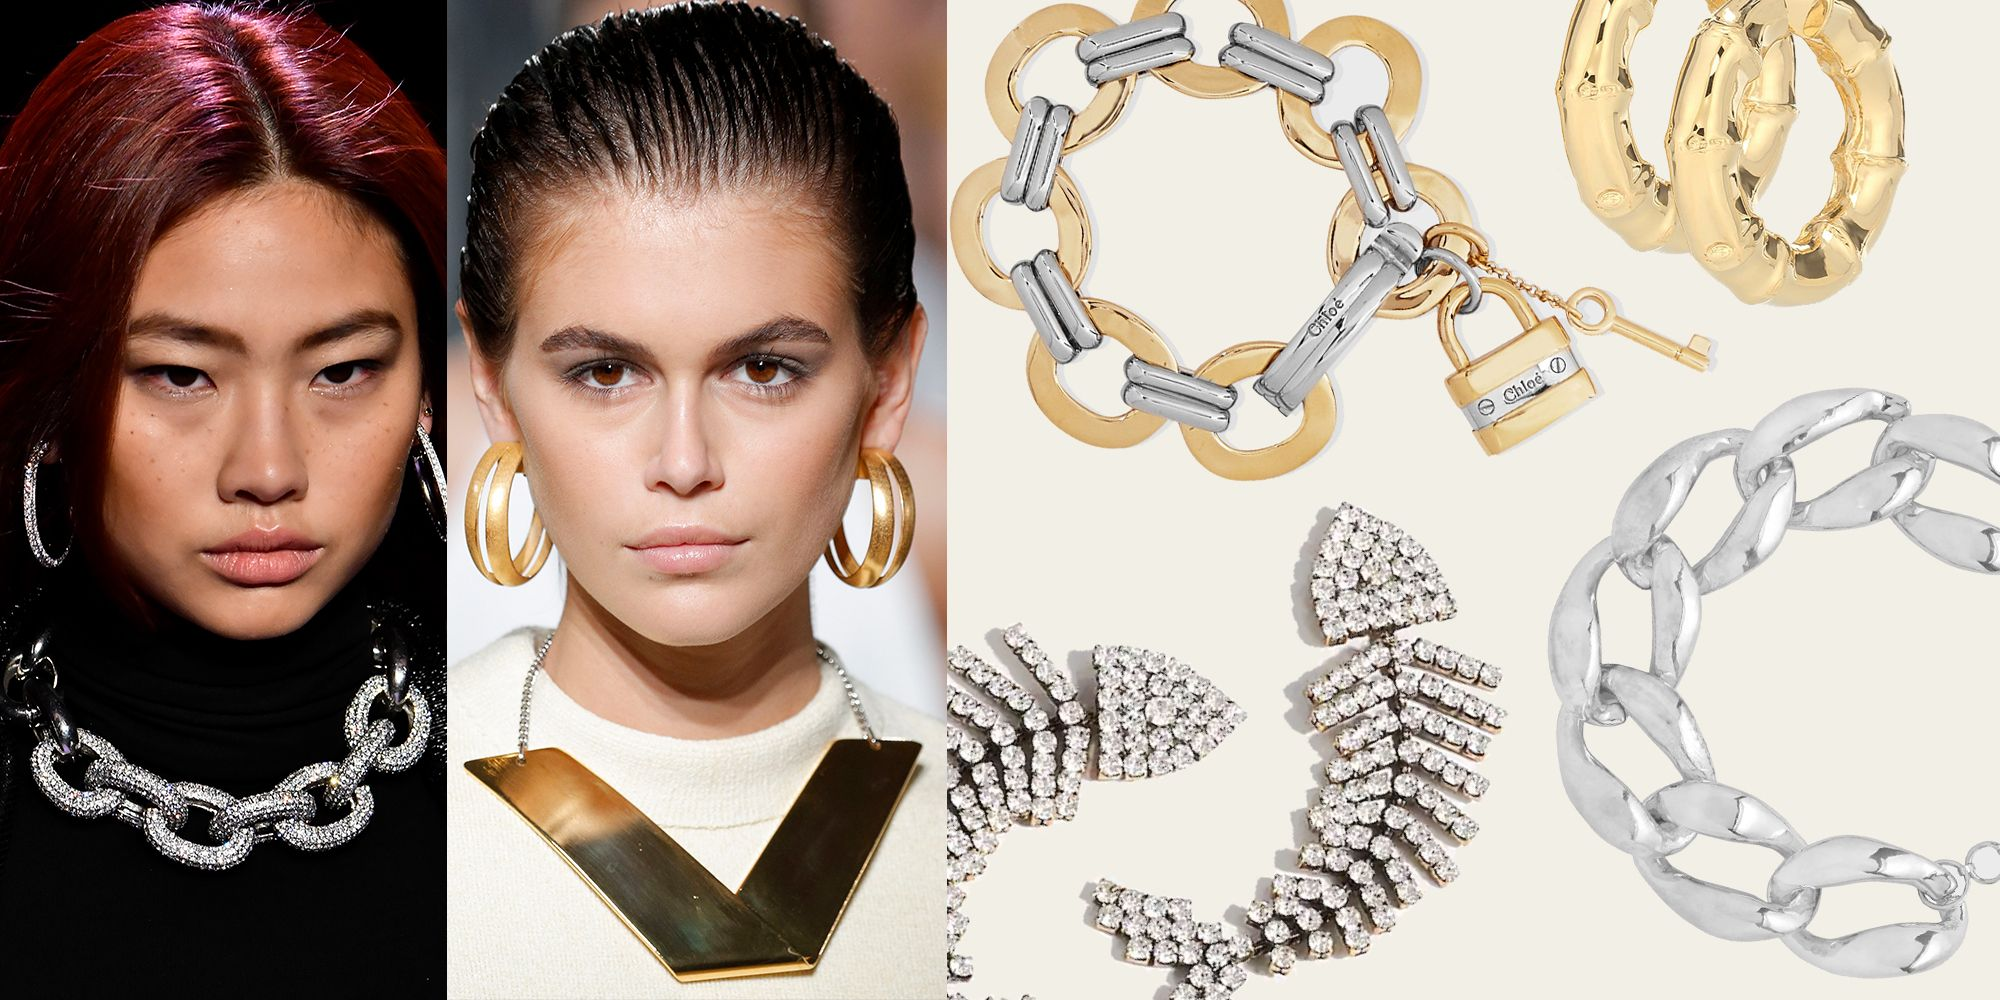 Artificial jewellery is the most popular type of fashionable accessories